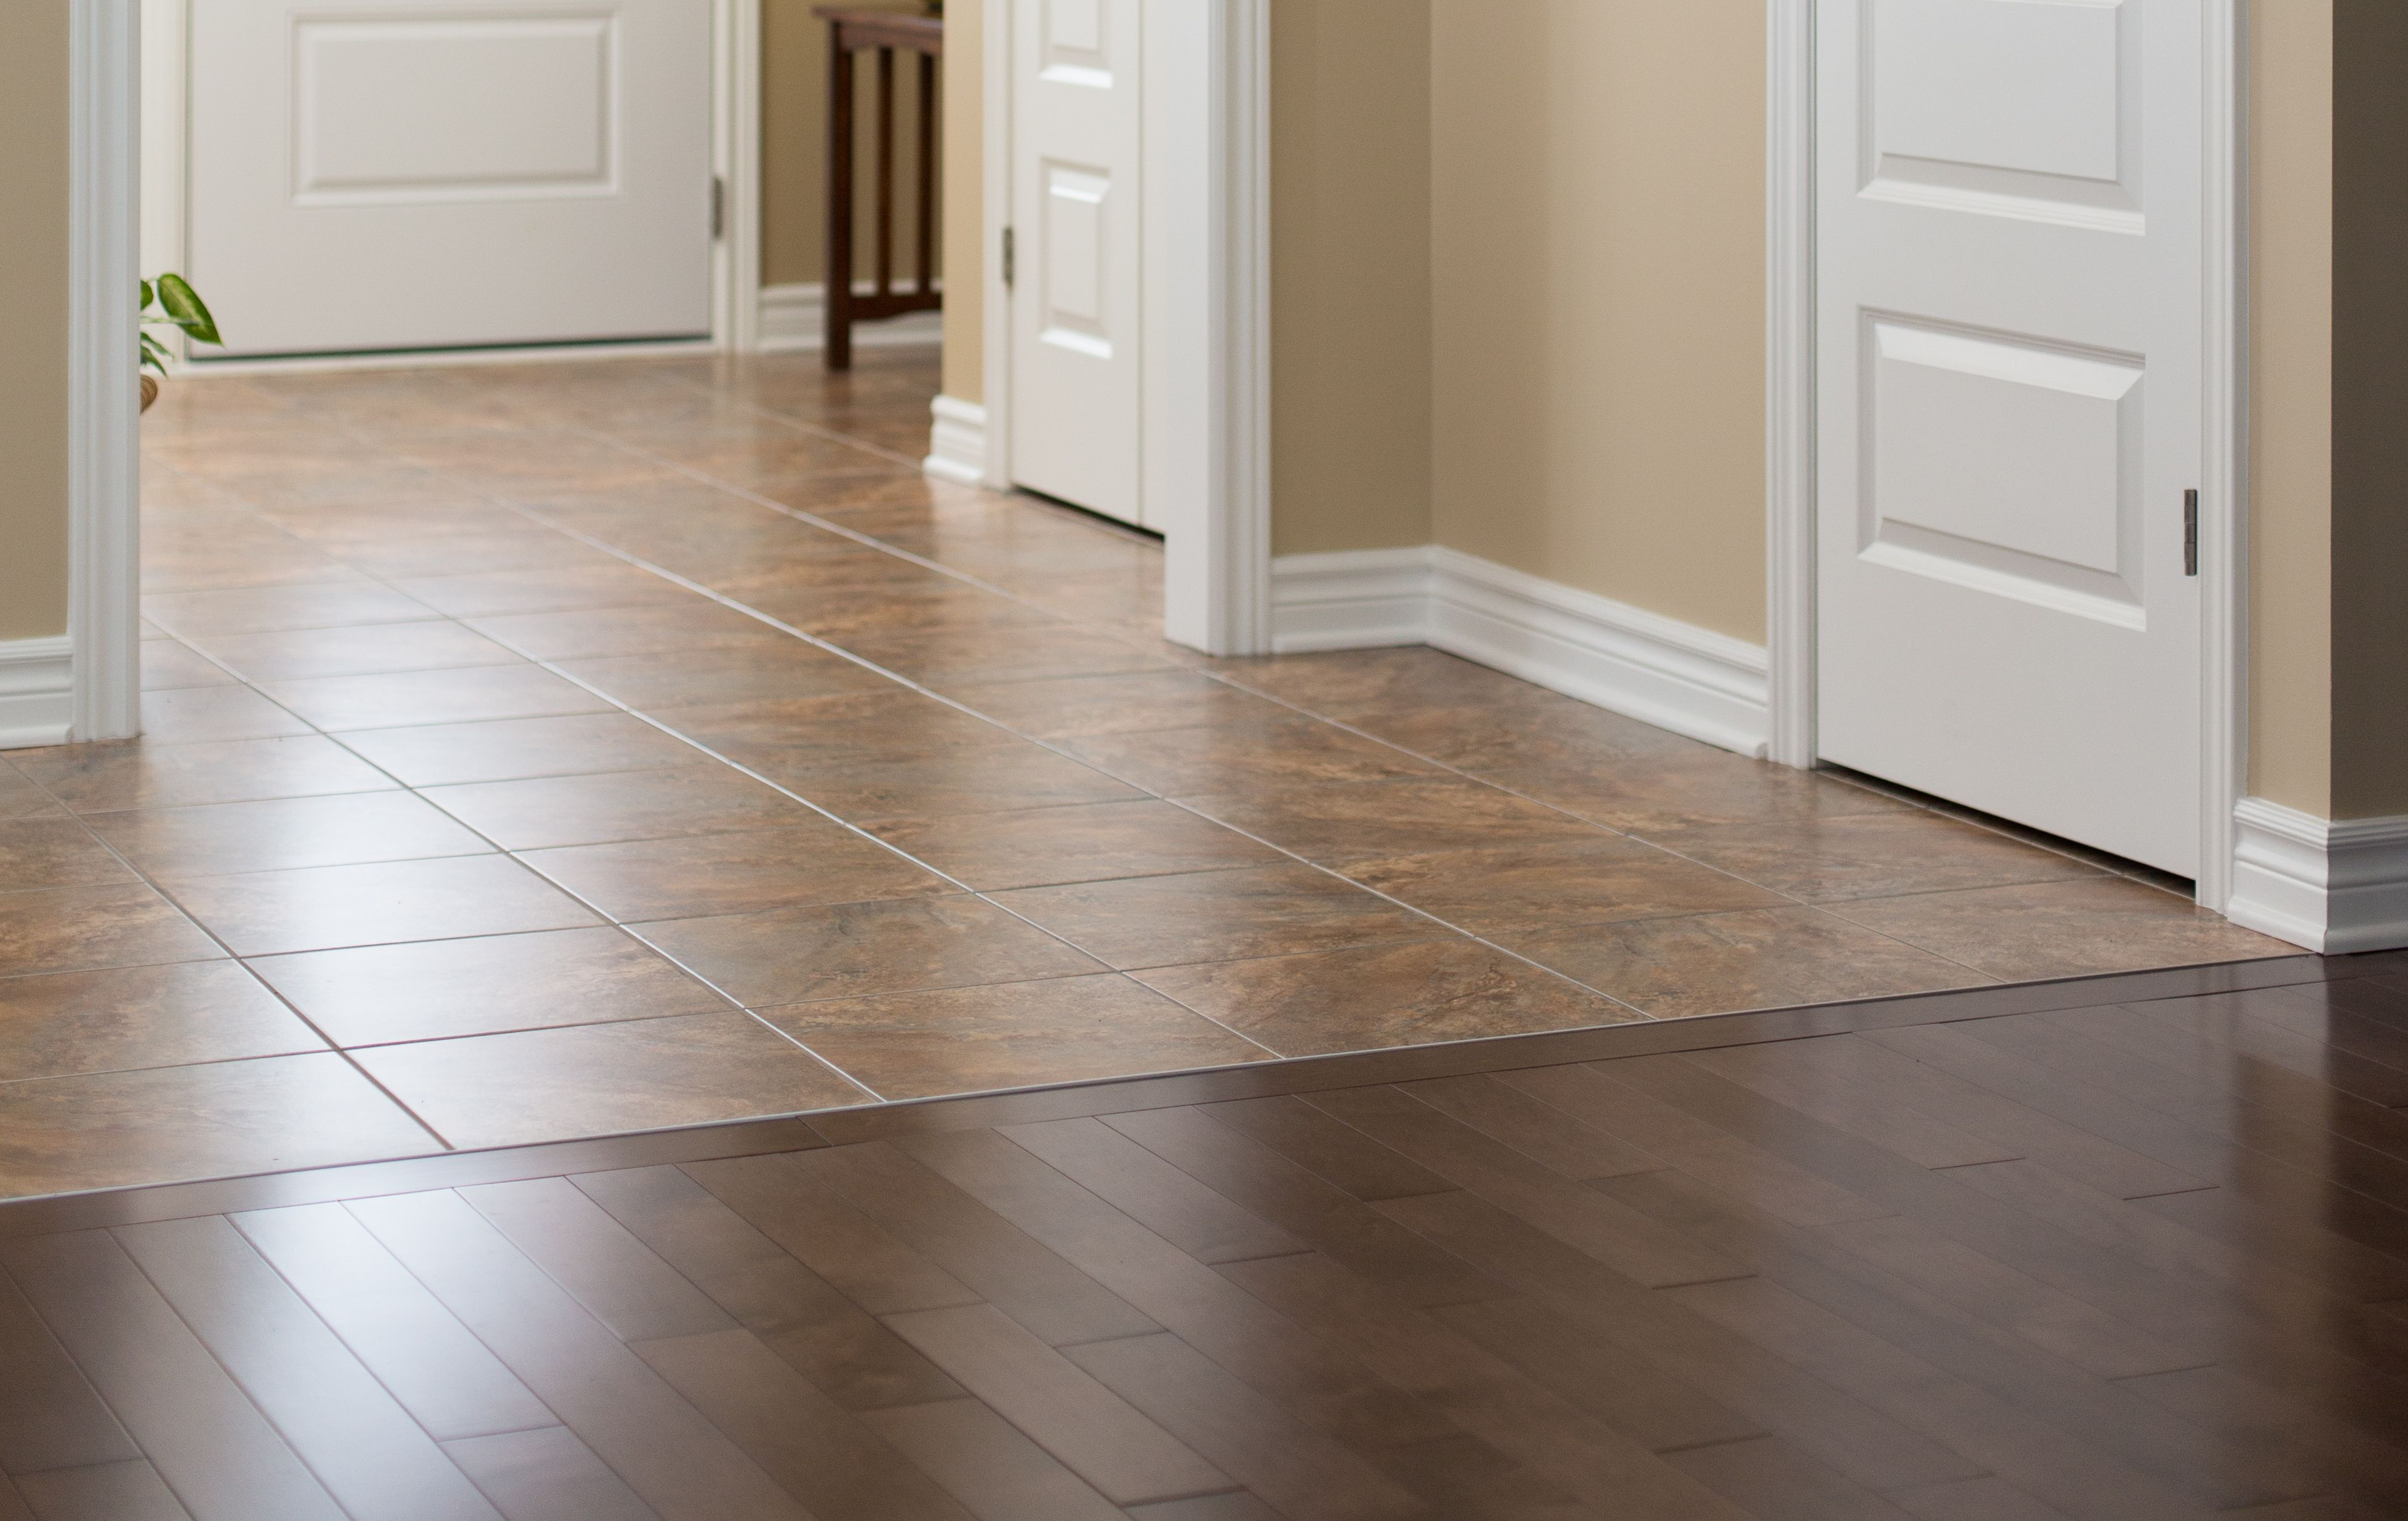 Best Transition Between Ceramic Tile And Hardwood In 2019 400 x 300